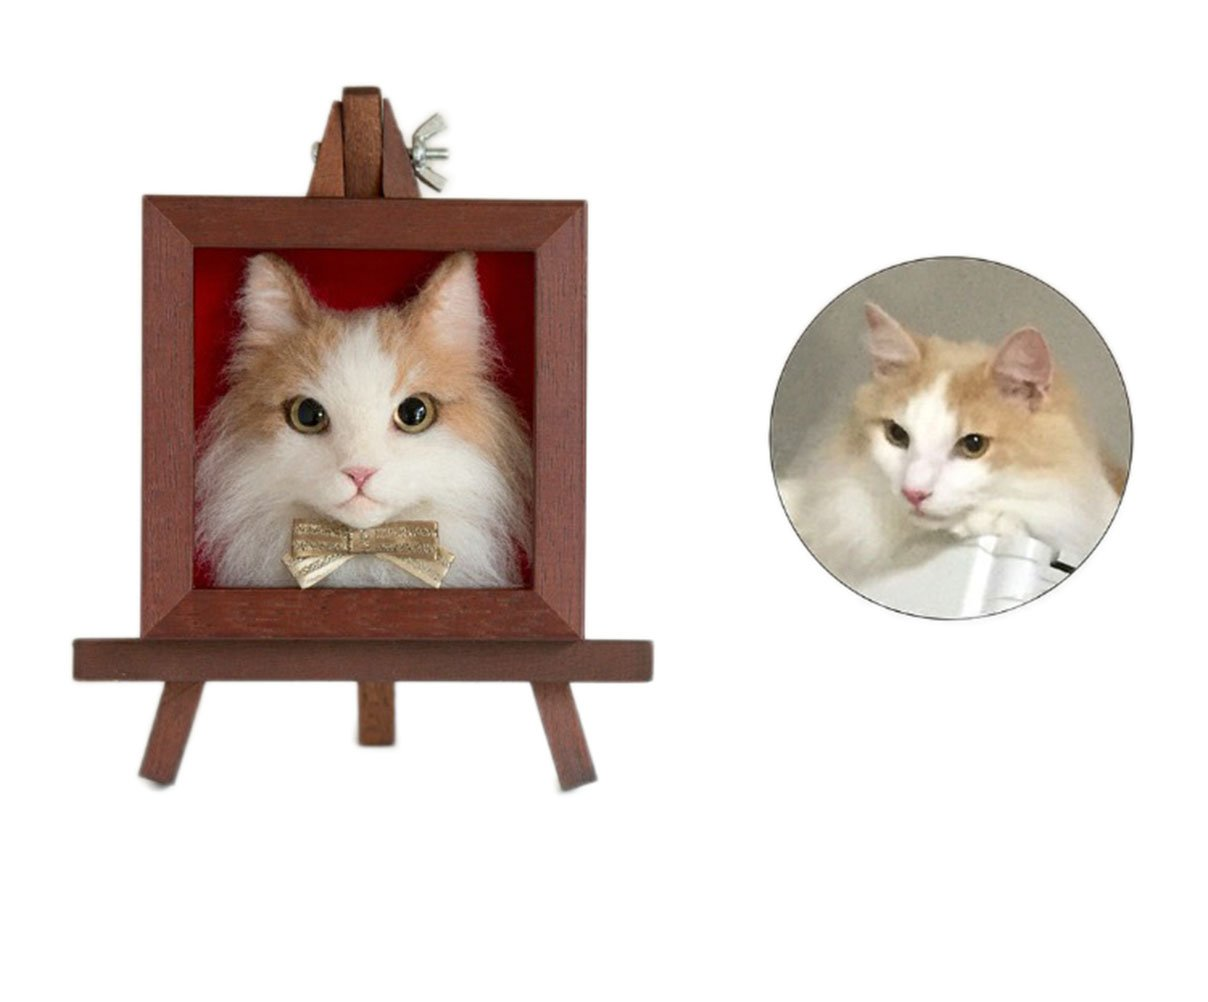 Pet Show Simulation Custom Wool Felt Handmade Cat Kitten 3D Sculpture Model Memorial Gift Personalized Copy of Your Cats Figure with Pine Redwood Photo Frames Pack of 1